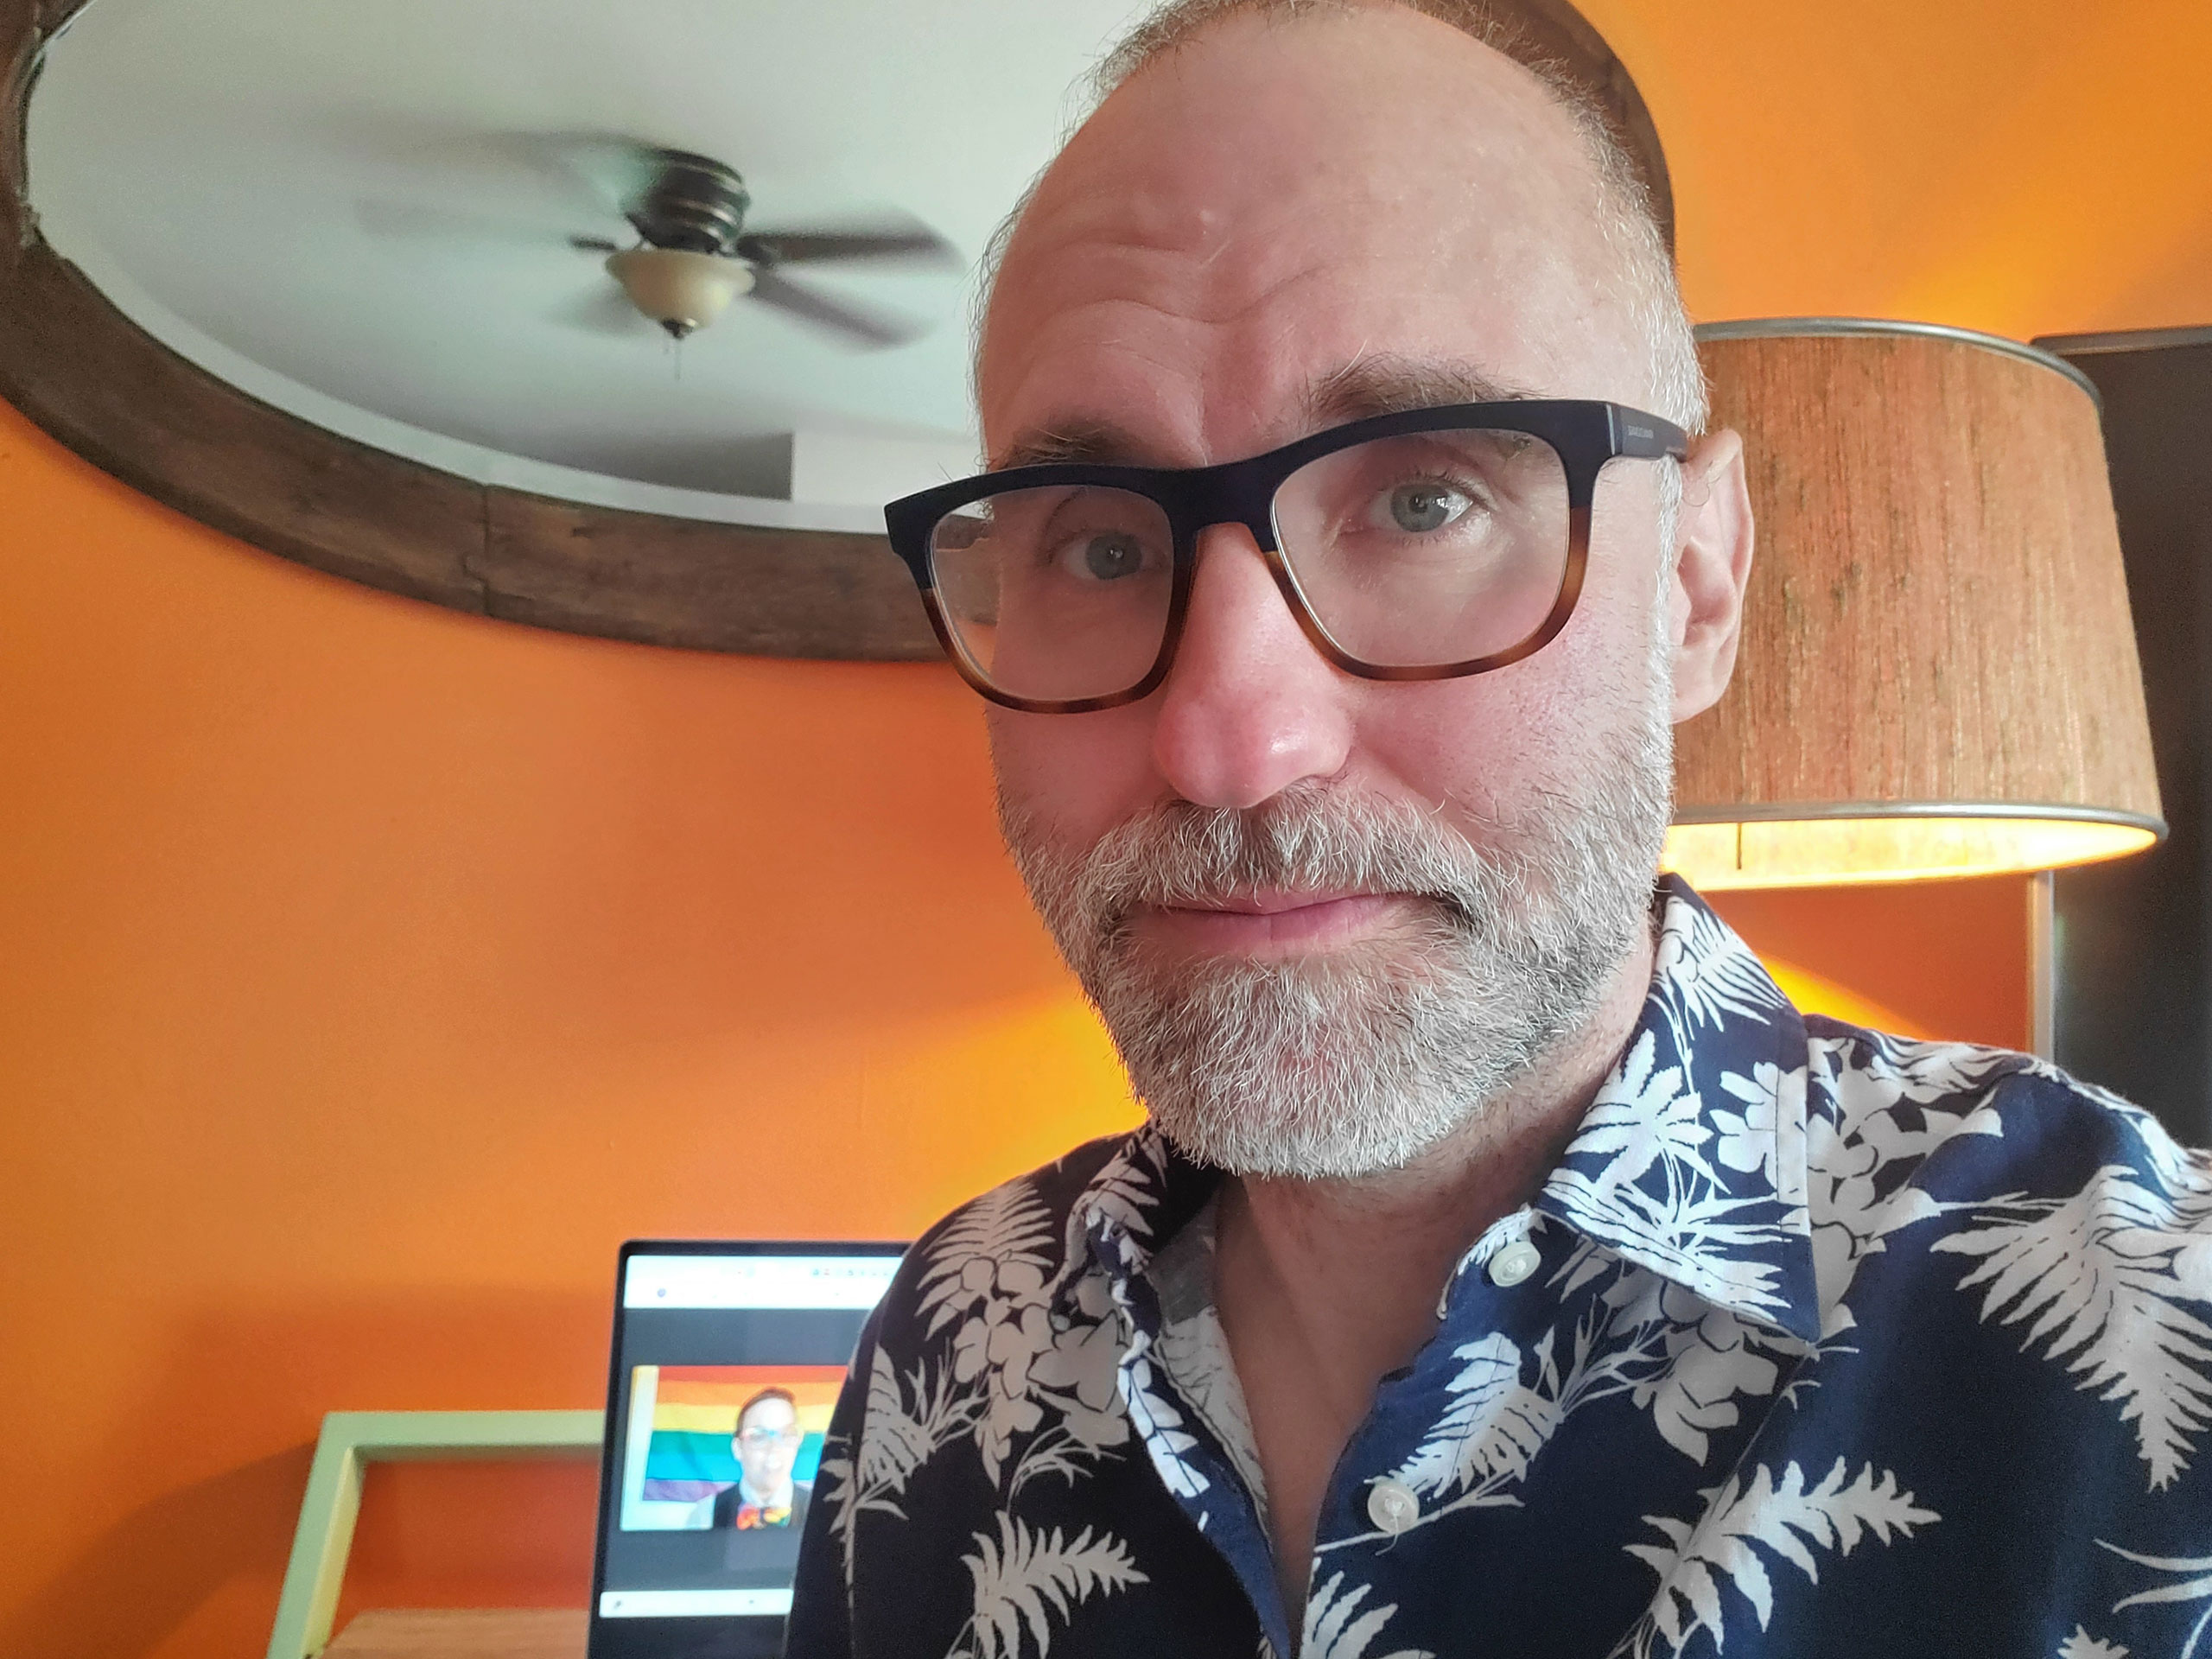 Man wearing palm print shirt and glasses